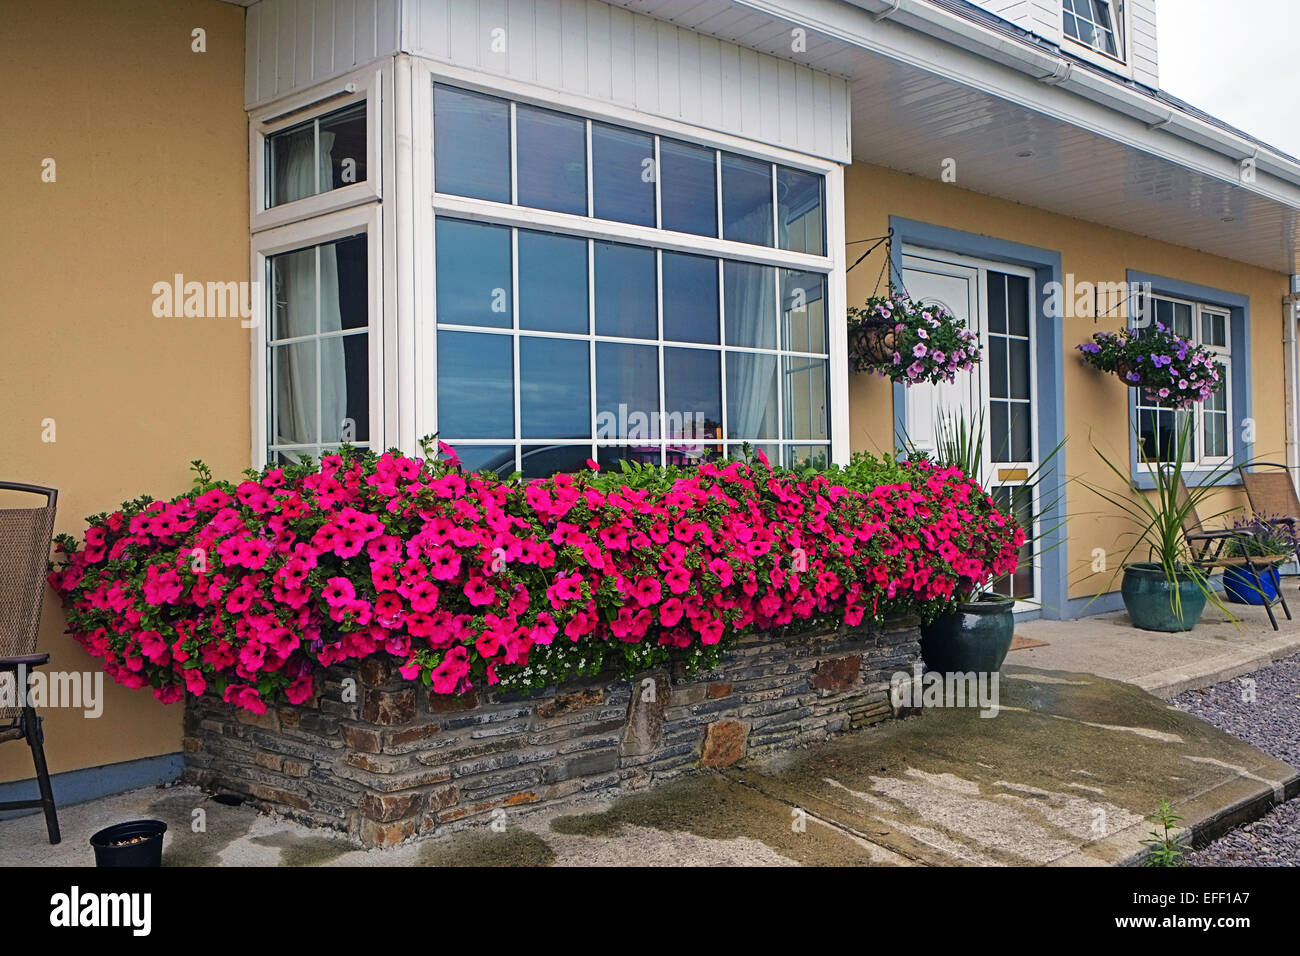 Petunia flower displays outdoor window box Ireland Stock Photo